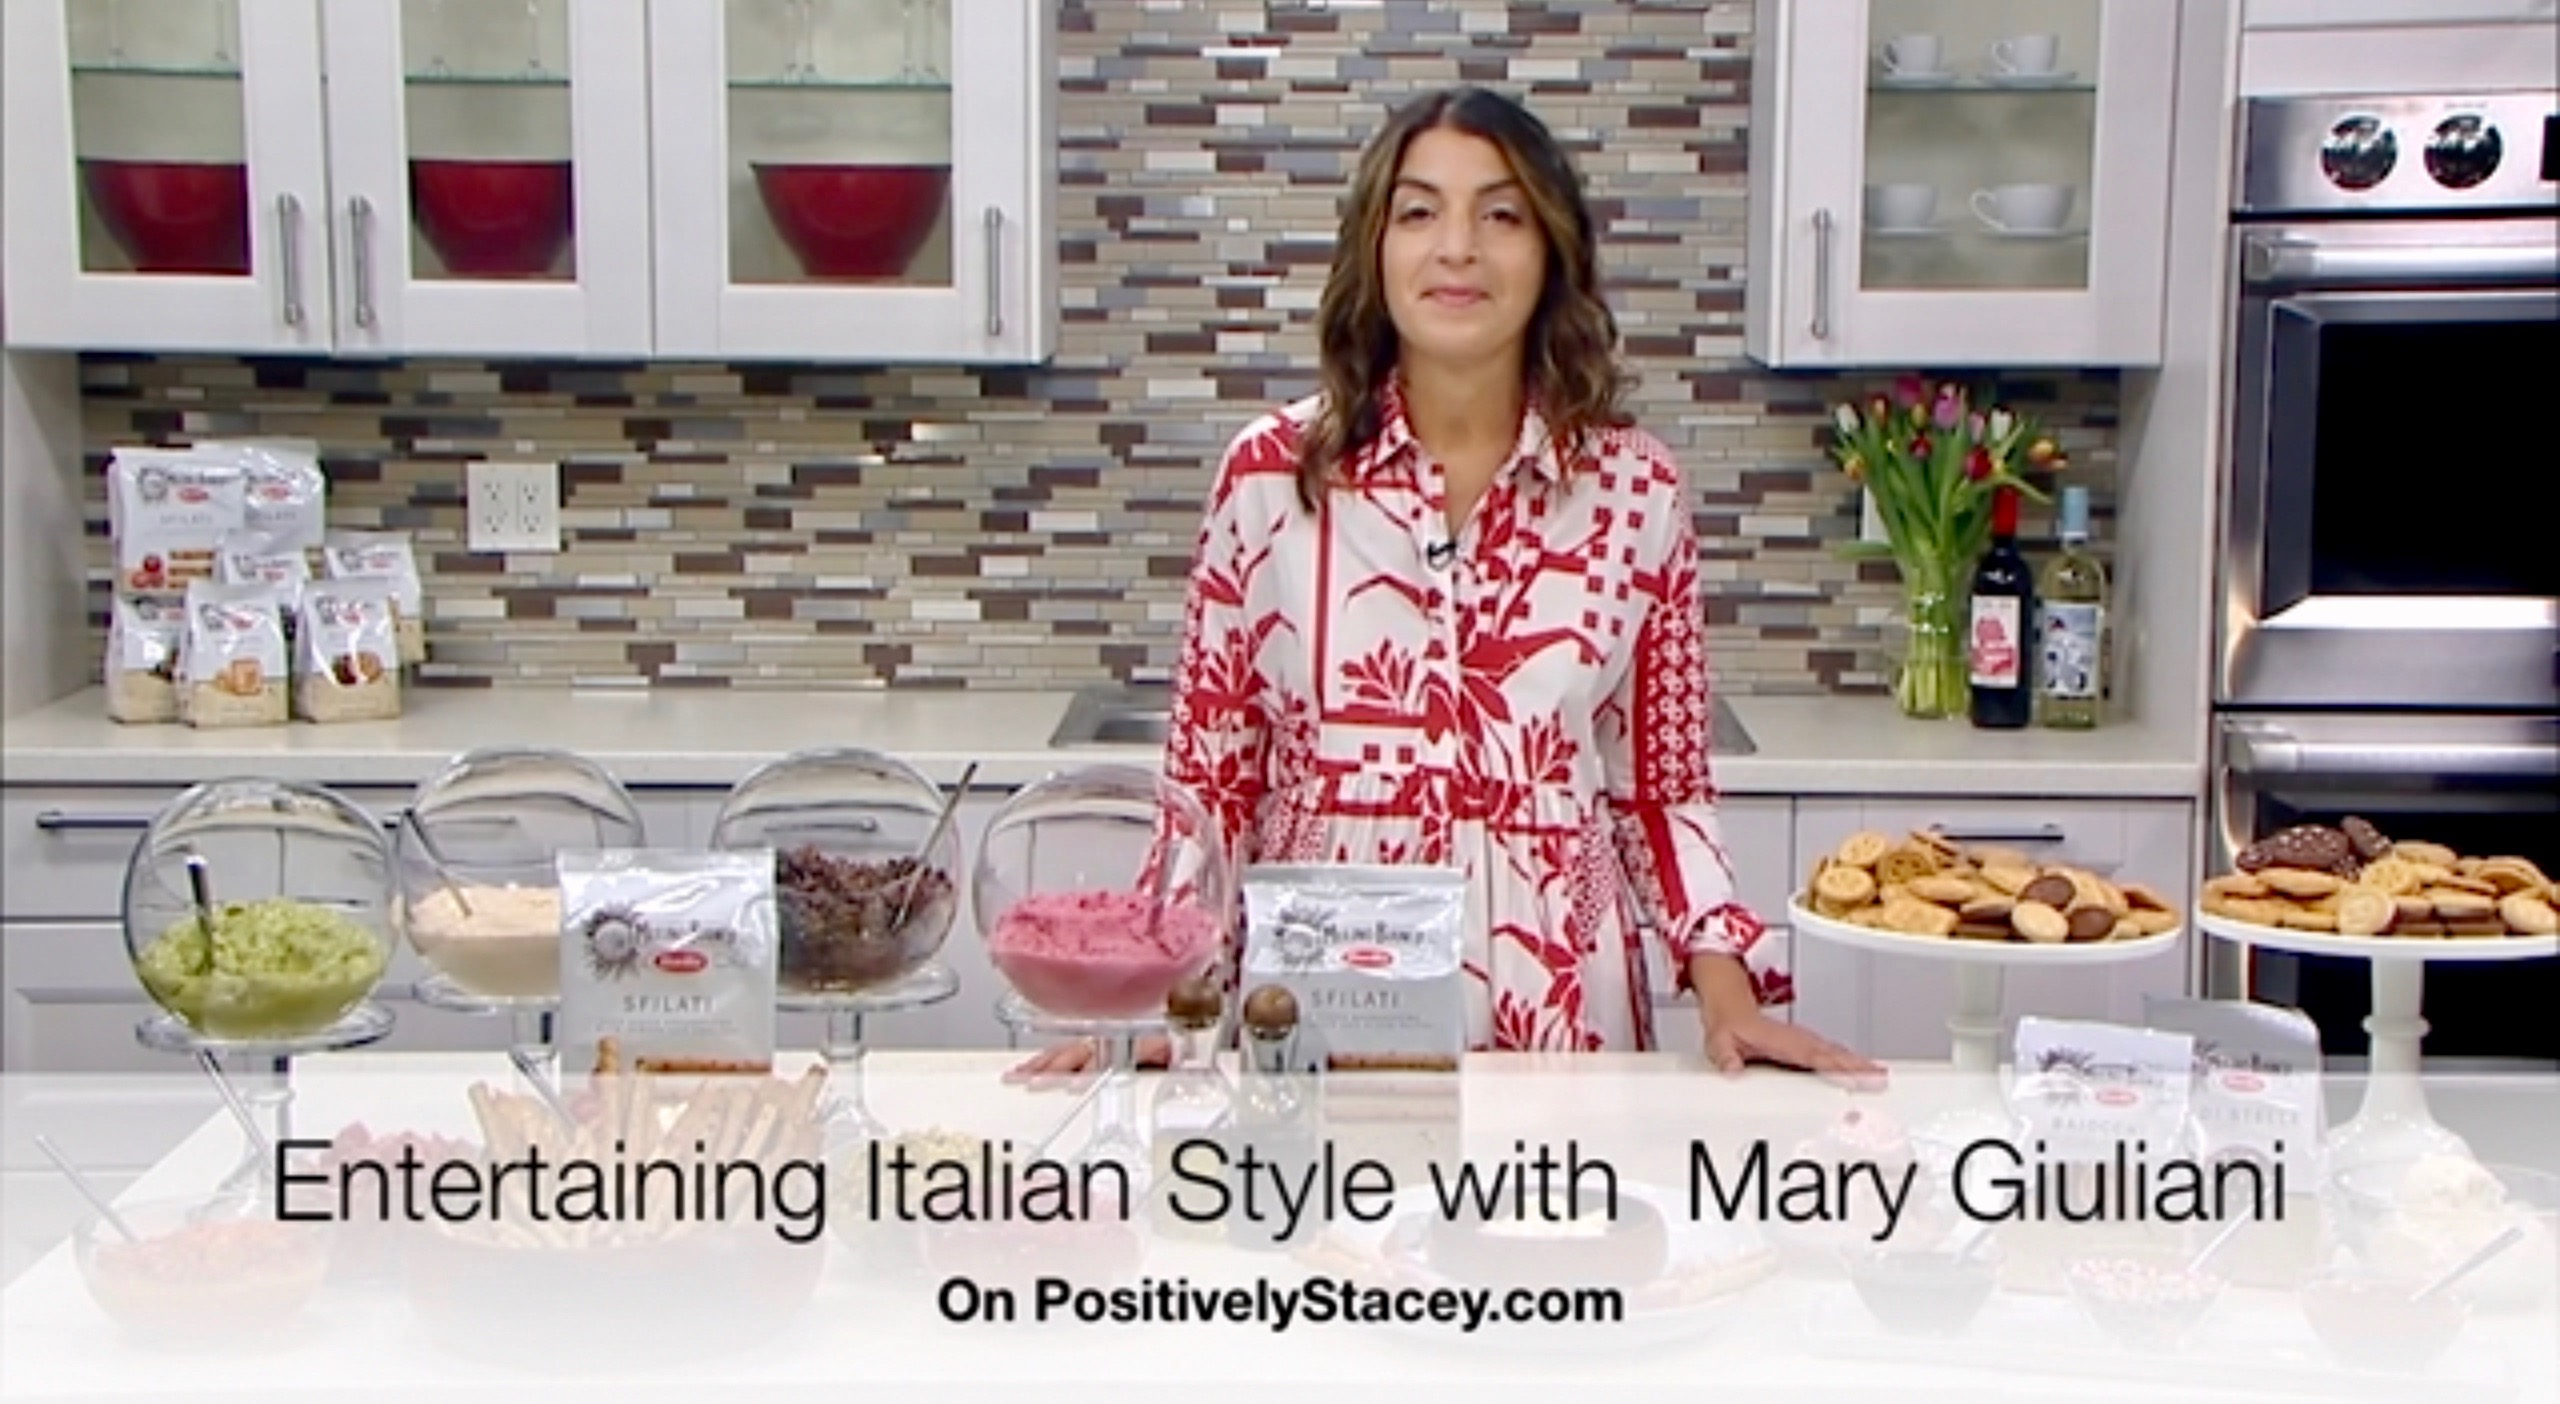 Entertaining Italian Style with Mary Giuliani